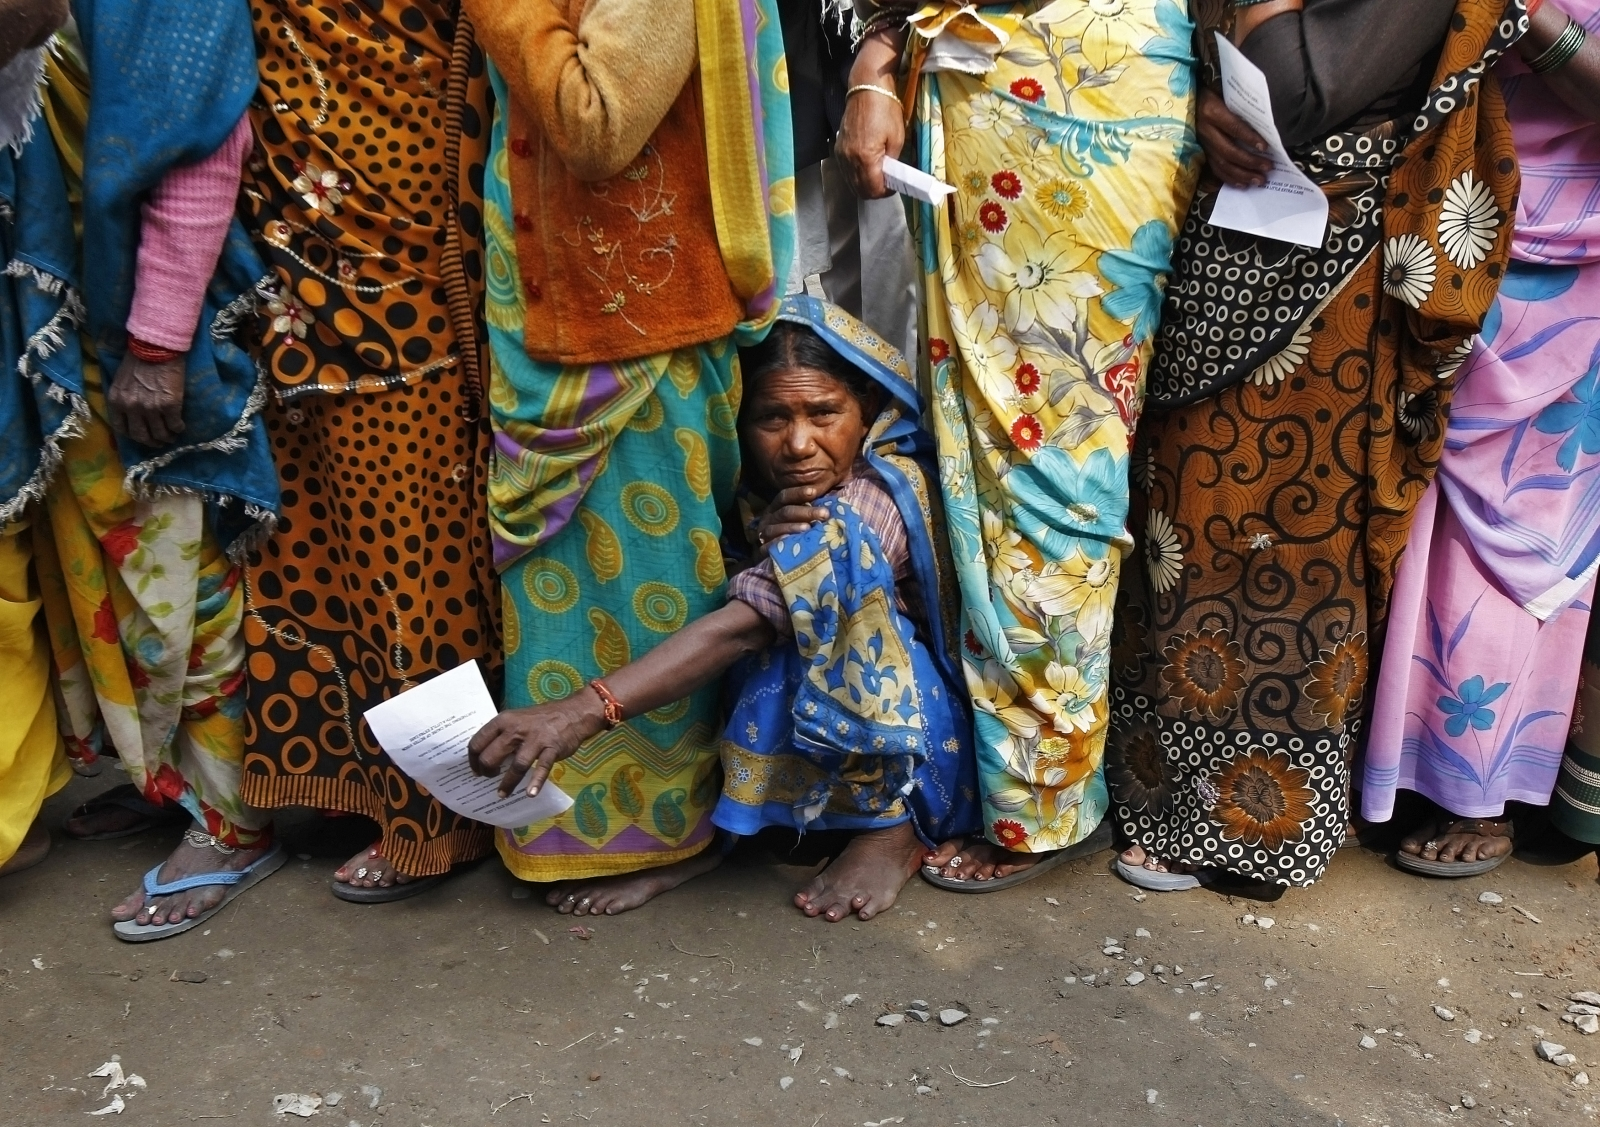 India women deaths at medical camps in Chhattisgarh